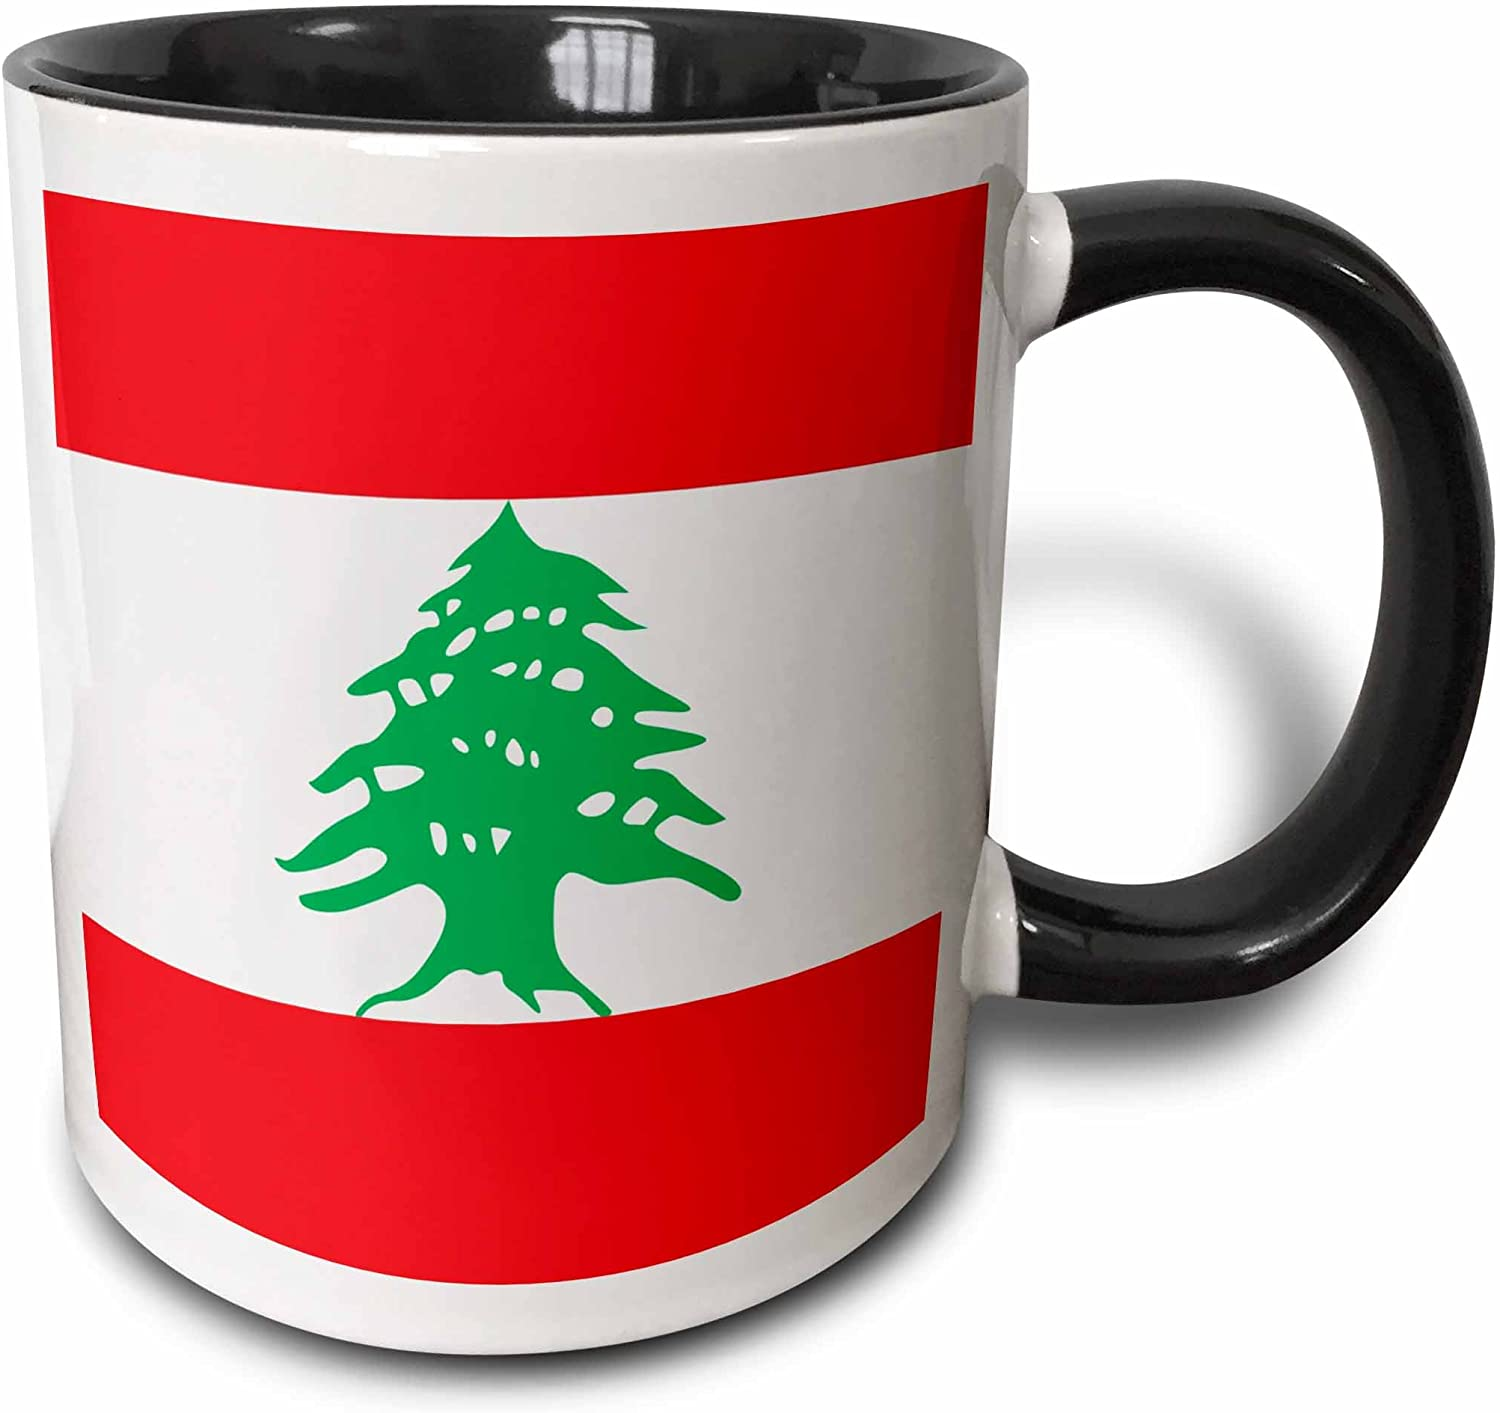 3dRose Flag of Lebanon - Lebanese red and white stripes with green cedar tree Mug, 11 oz, Black